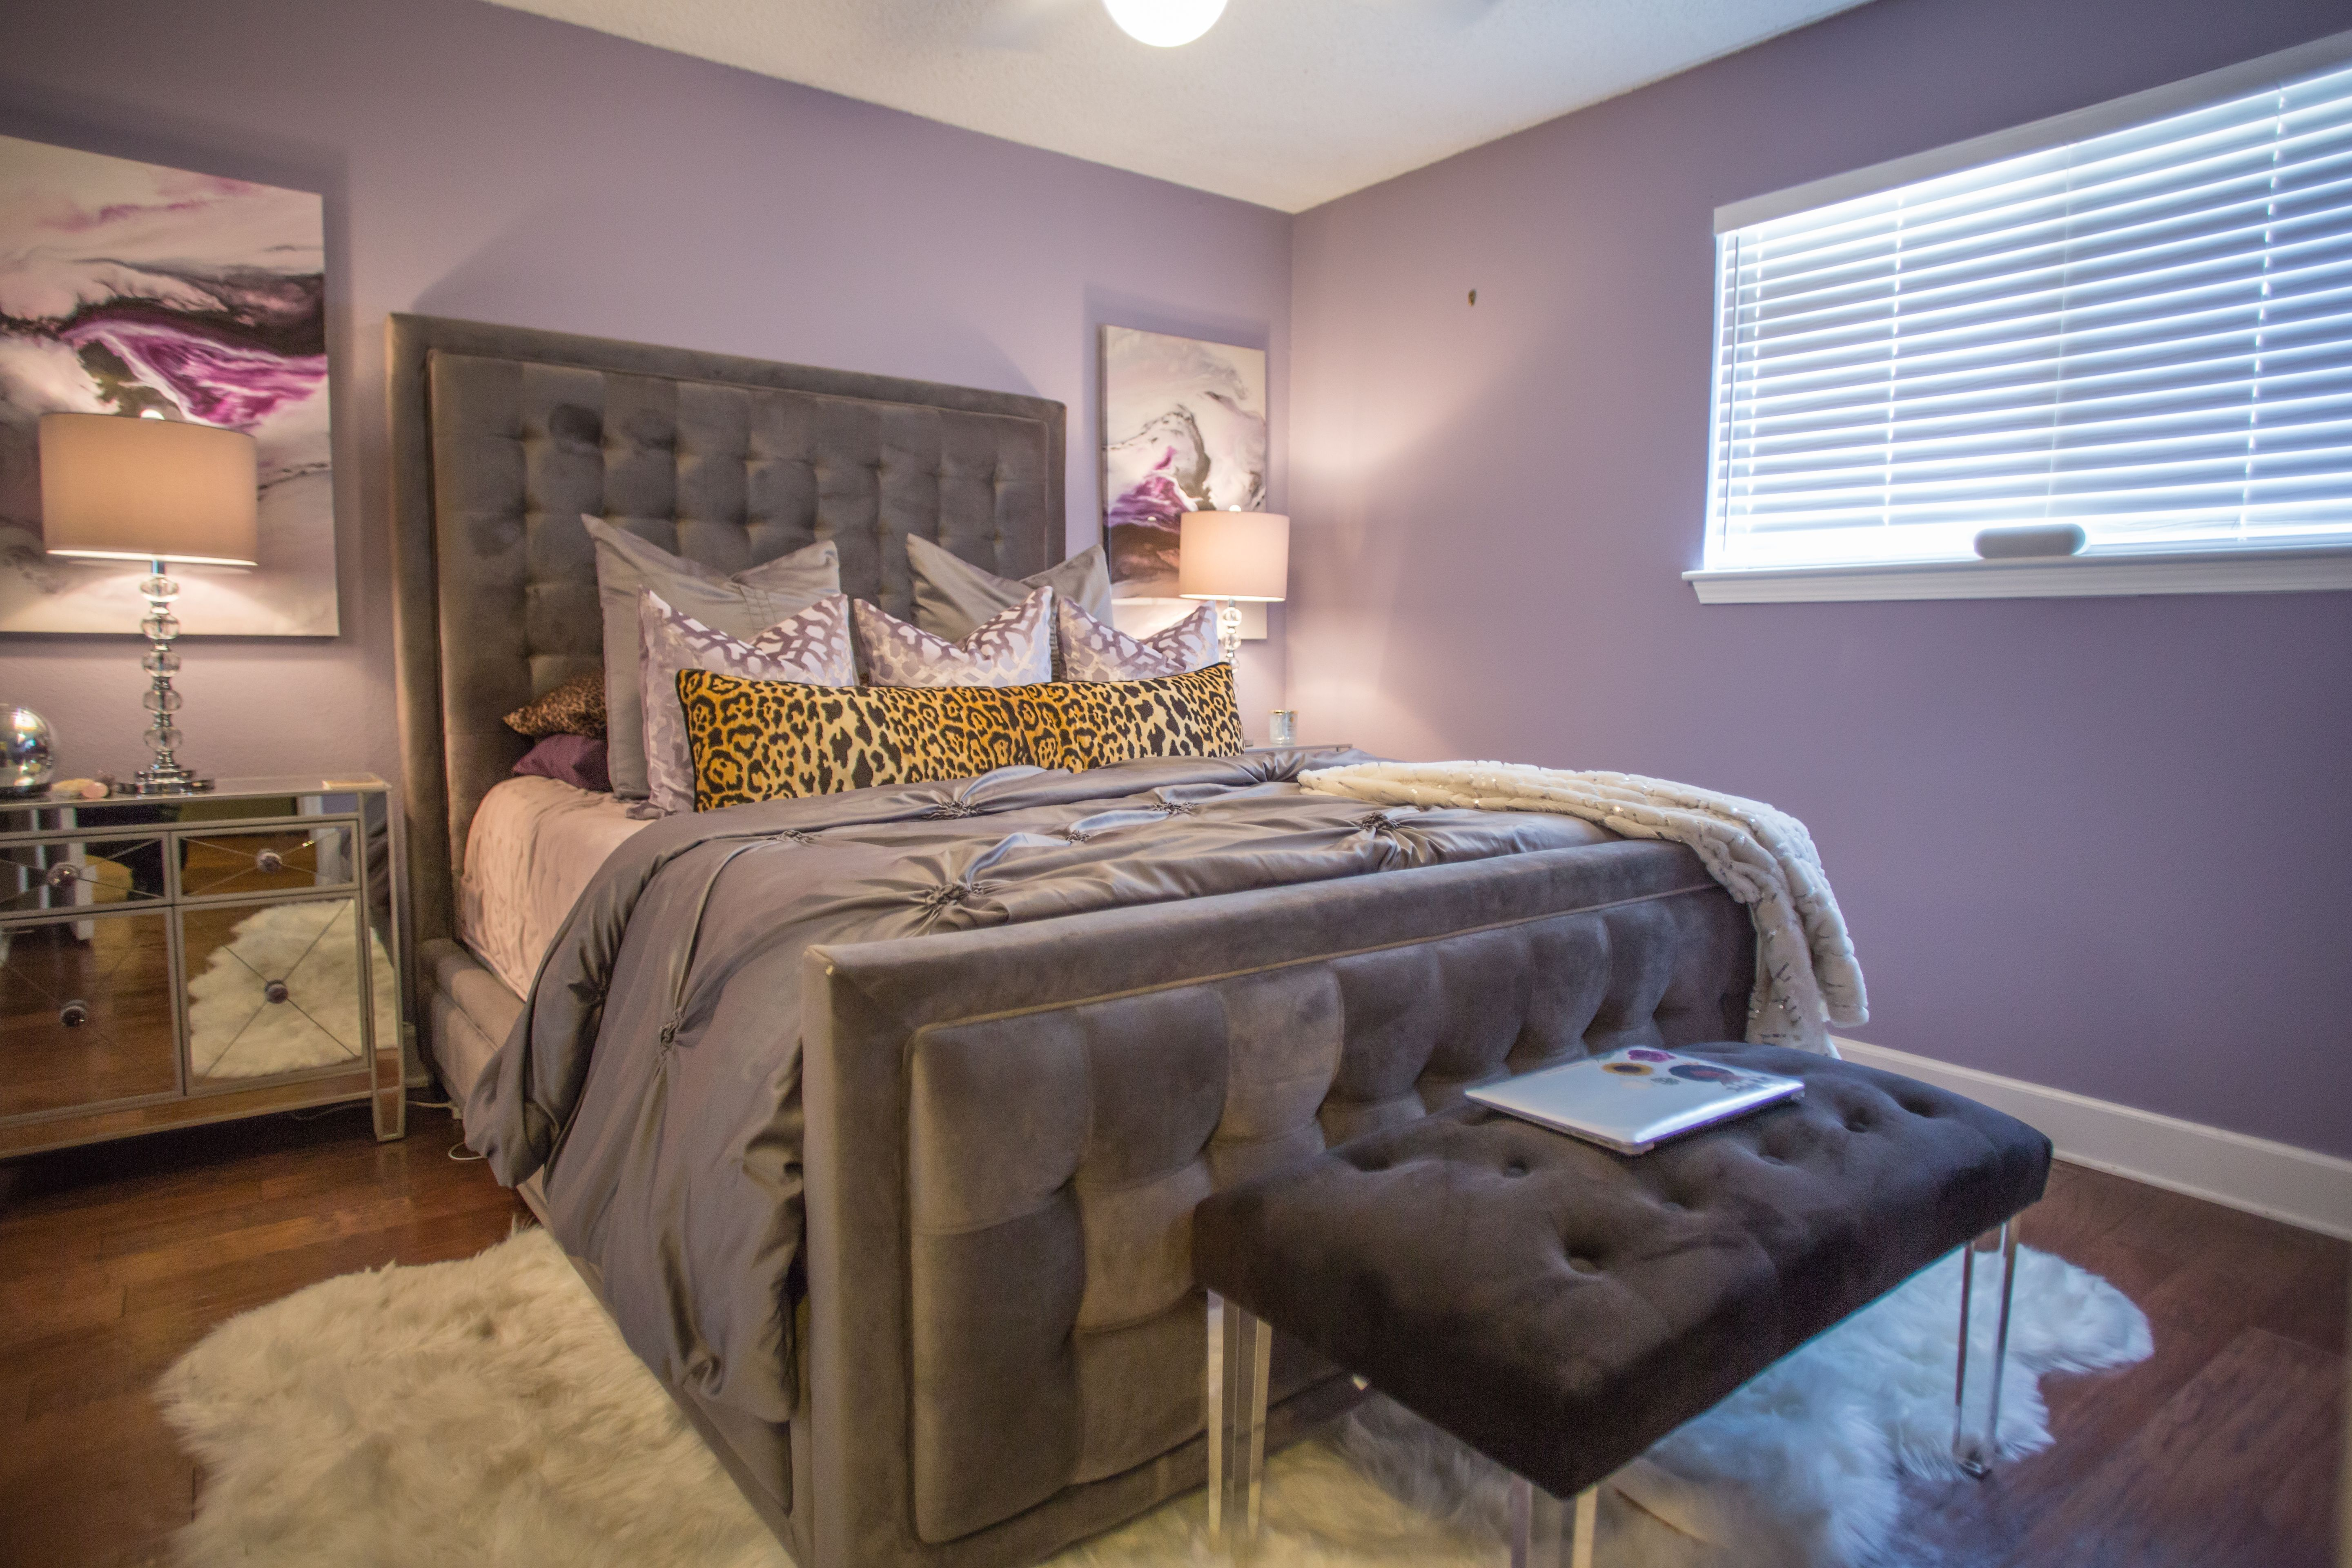 Themonalisaa Styles A Luxurious Purple Bedroom With Glam Accents See More At Www Monalisaastyles C Luxurious Bedrooms Small Bedroom Furniture Bedroom Design